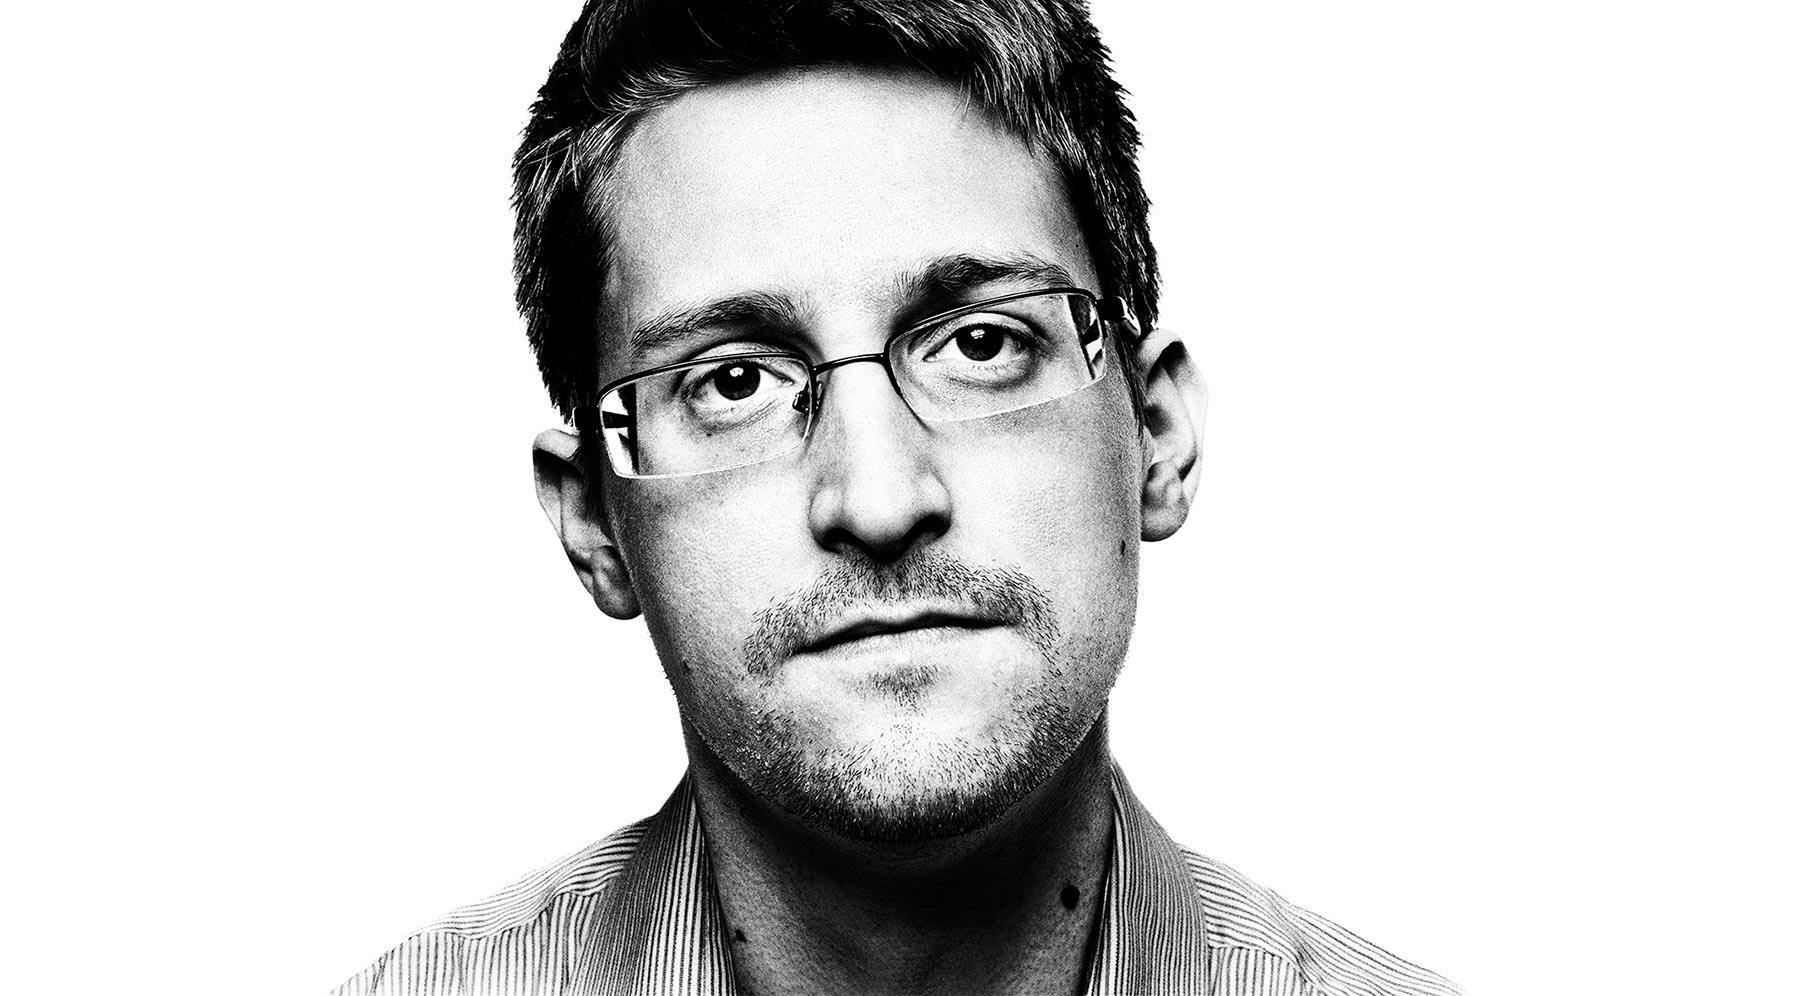 edward snowden would like to come home 2015